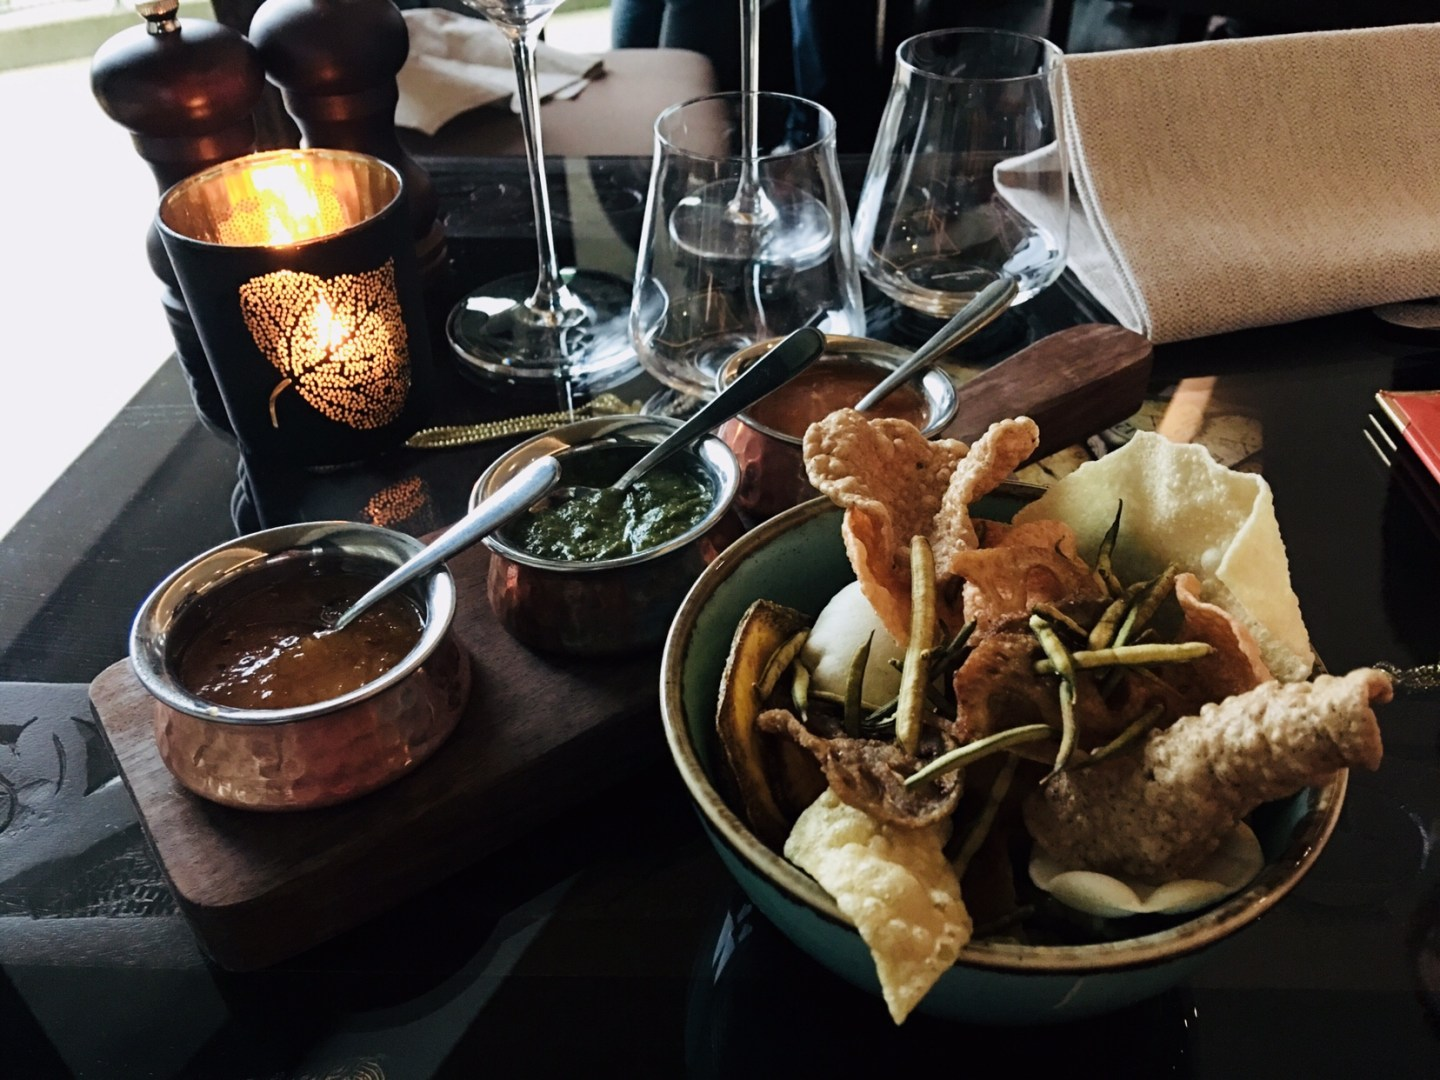 There's A New Indian Restaurant In Town: Chokhi Dhani